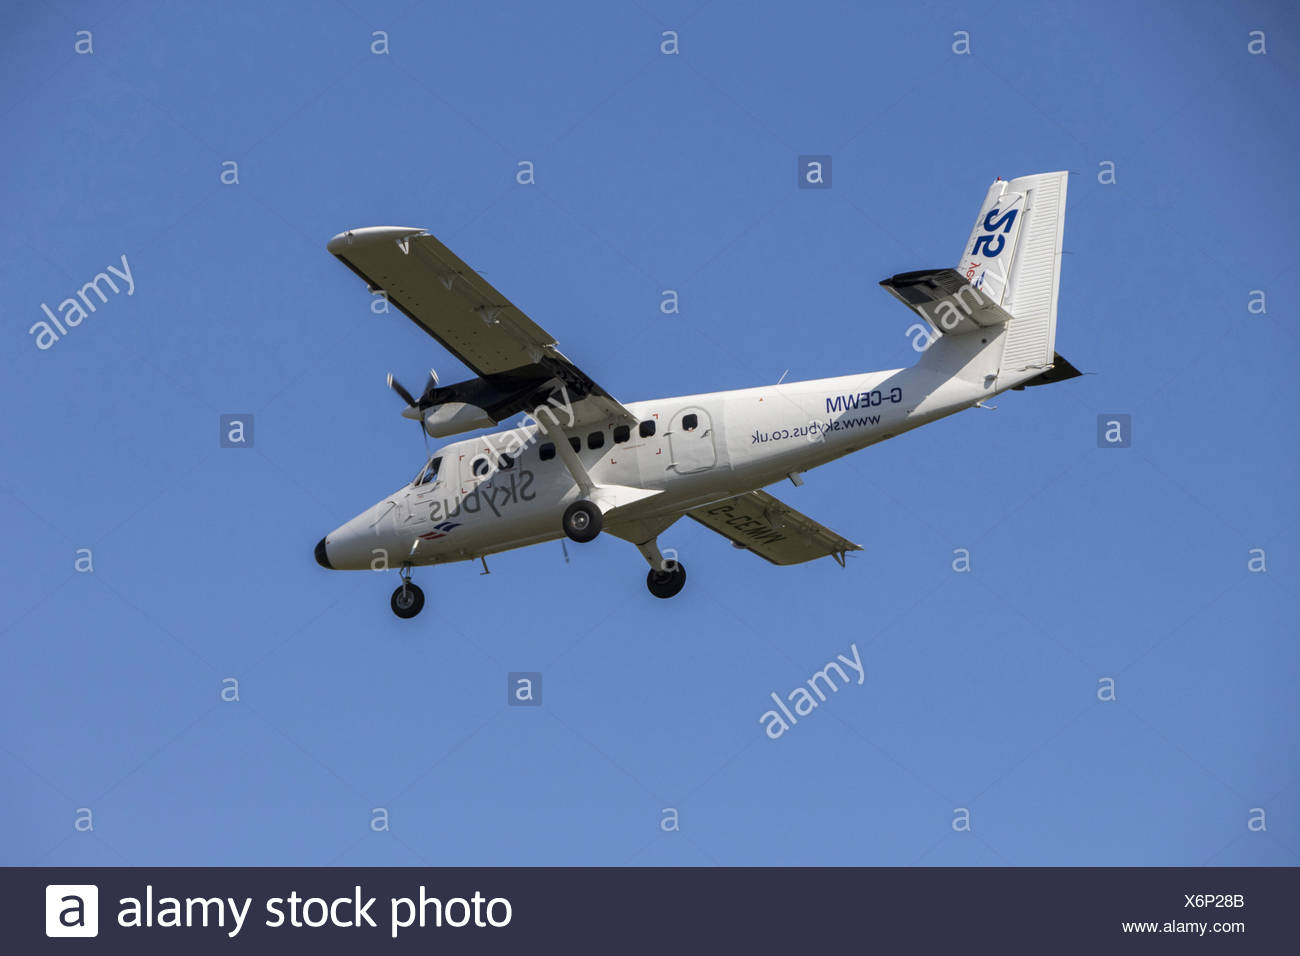 Isle of Scilly Skybus De Havilland Canada DHC-6 Twin Otter Series 310. This is the plane that bird watching visitors to The Scilly Island use. - Stock Image